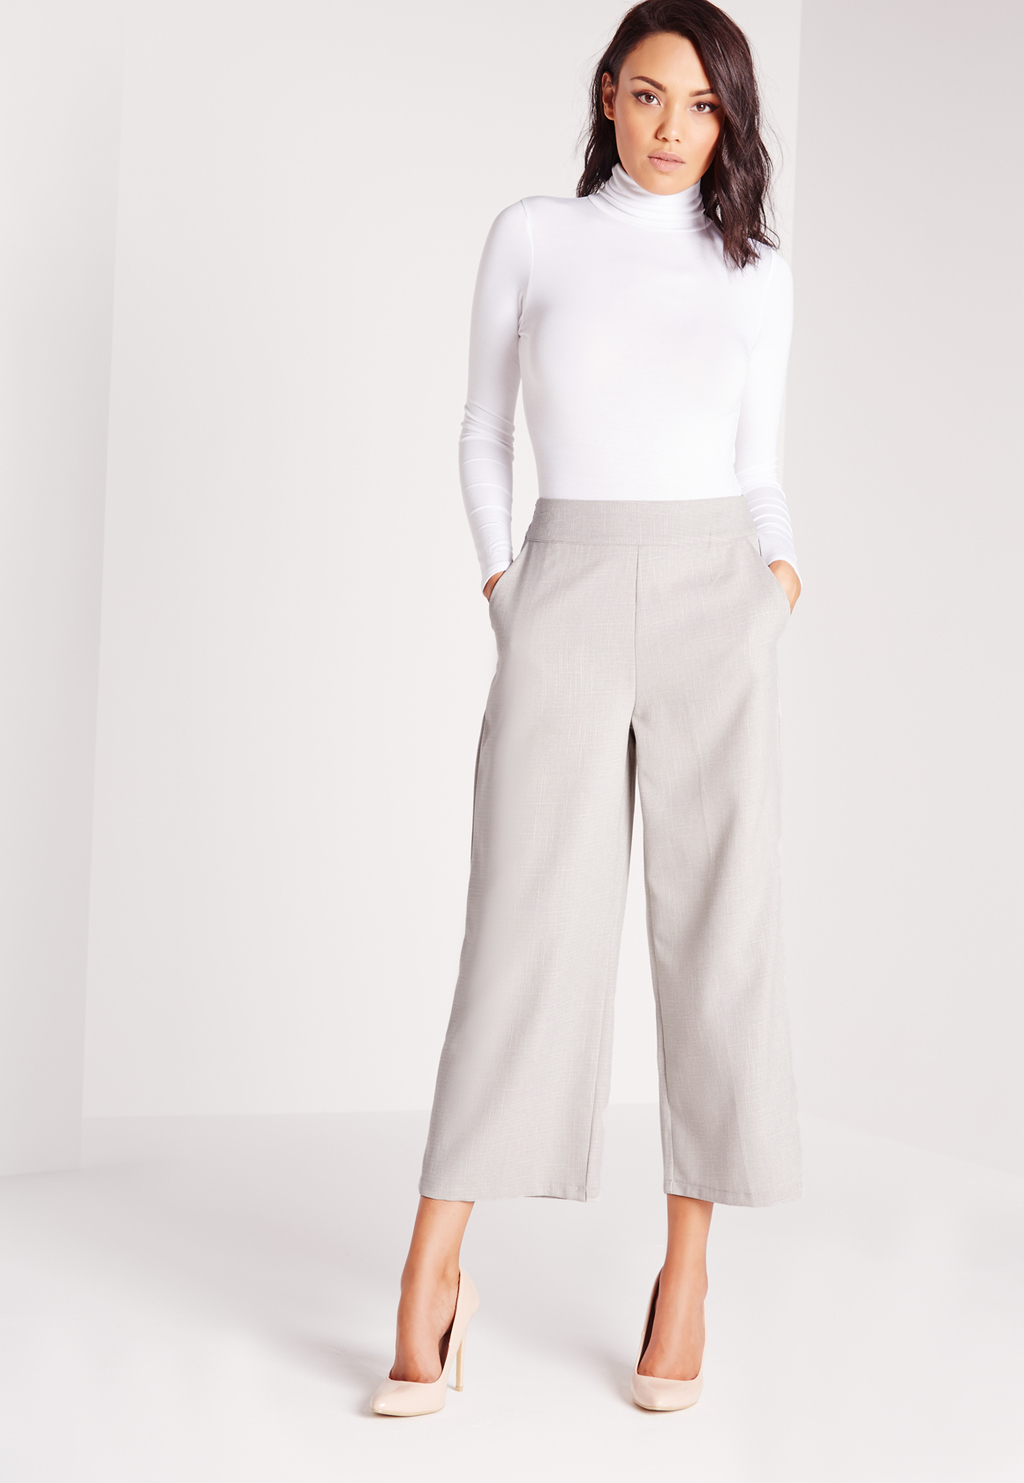 Cropped Wide Leg Trousers Grey, Grey - pattern: plain; waist: high rise; predominant colour: light grey; length: ankle length; fibres: polyester/polyamide - 100%; fit: wide leg; pattern type: fabric; texture group: other - light to midweight; style: standard; occasions: creative work; season: s/s 2016; wardrobe: basic